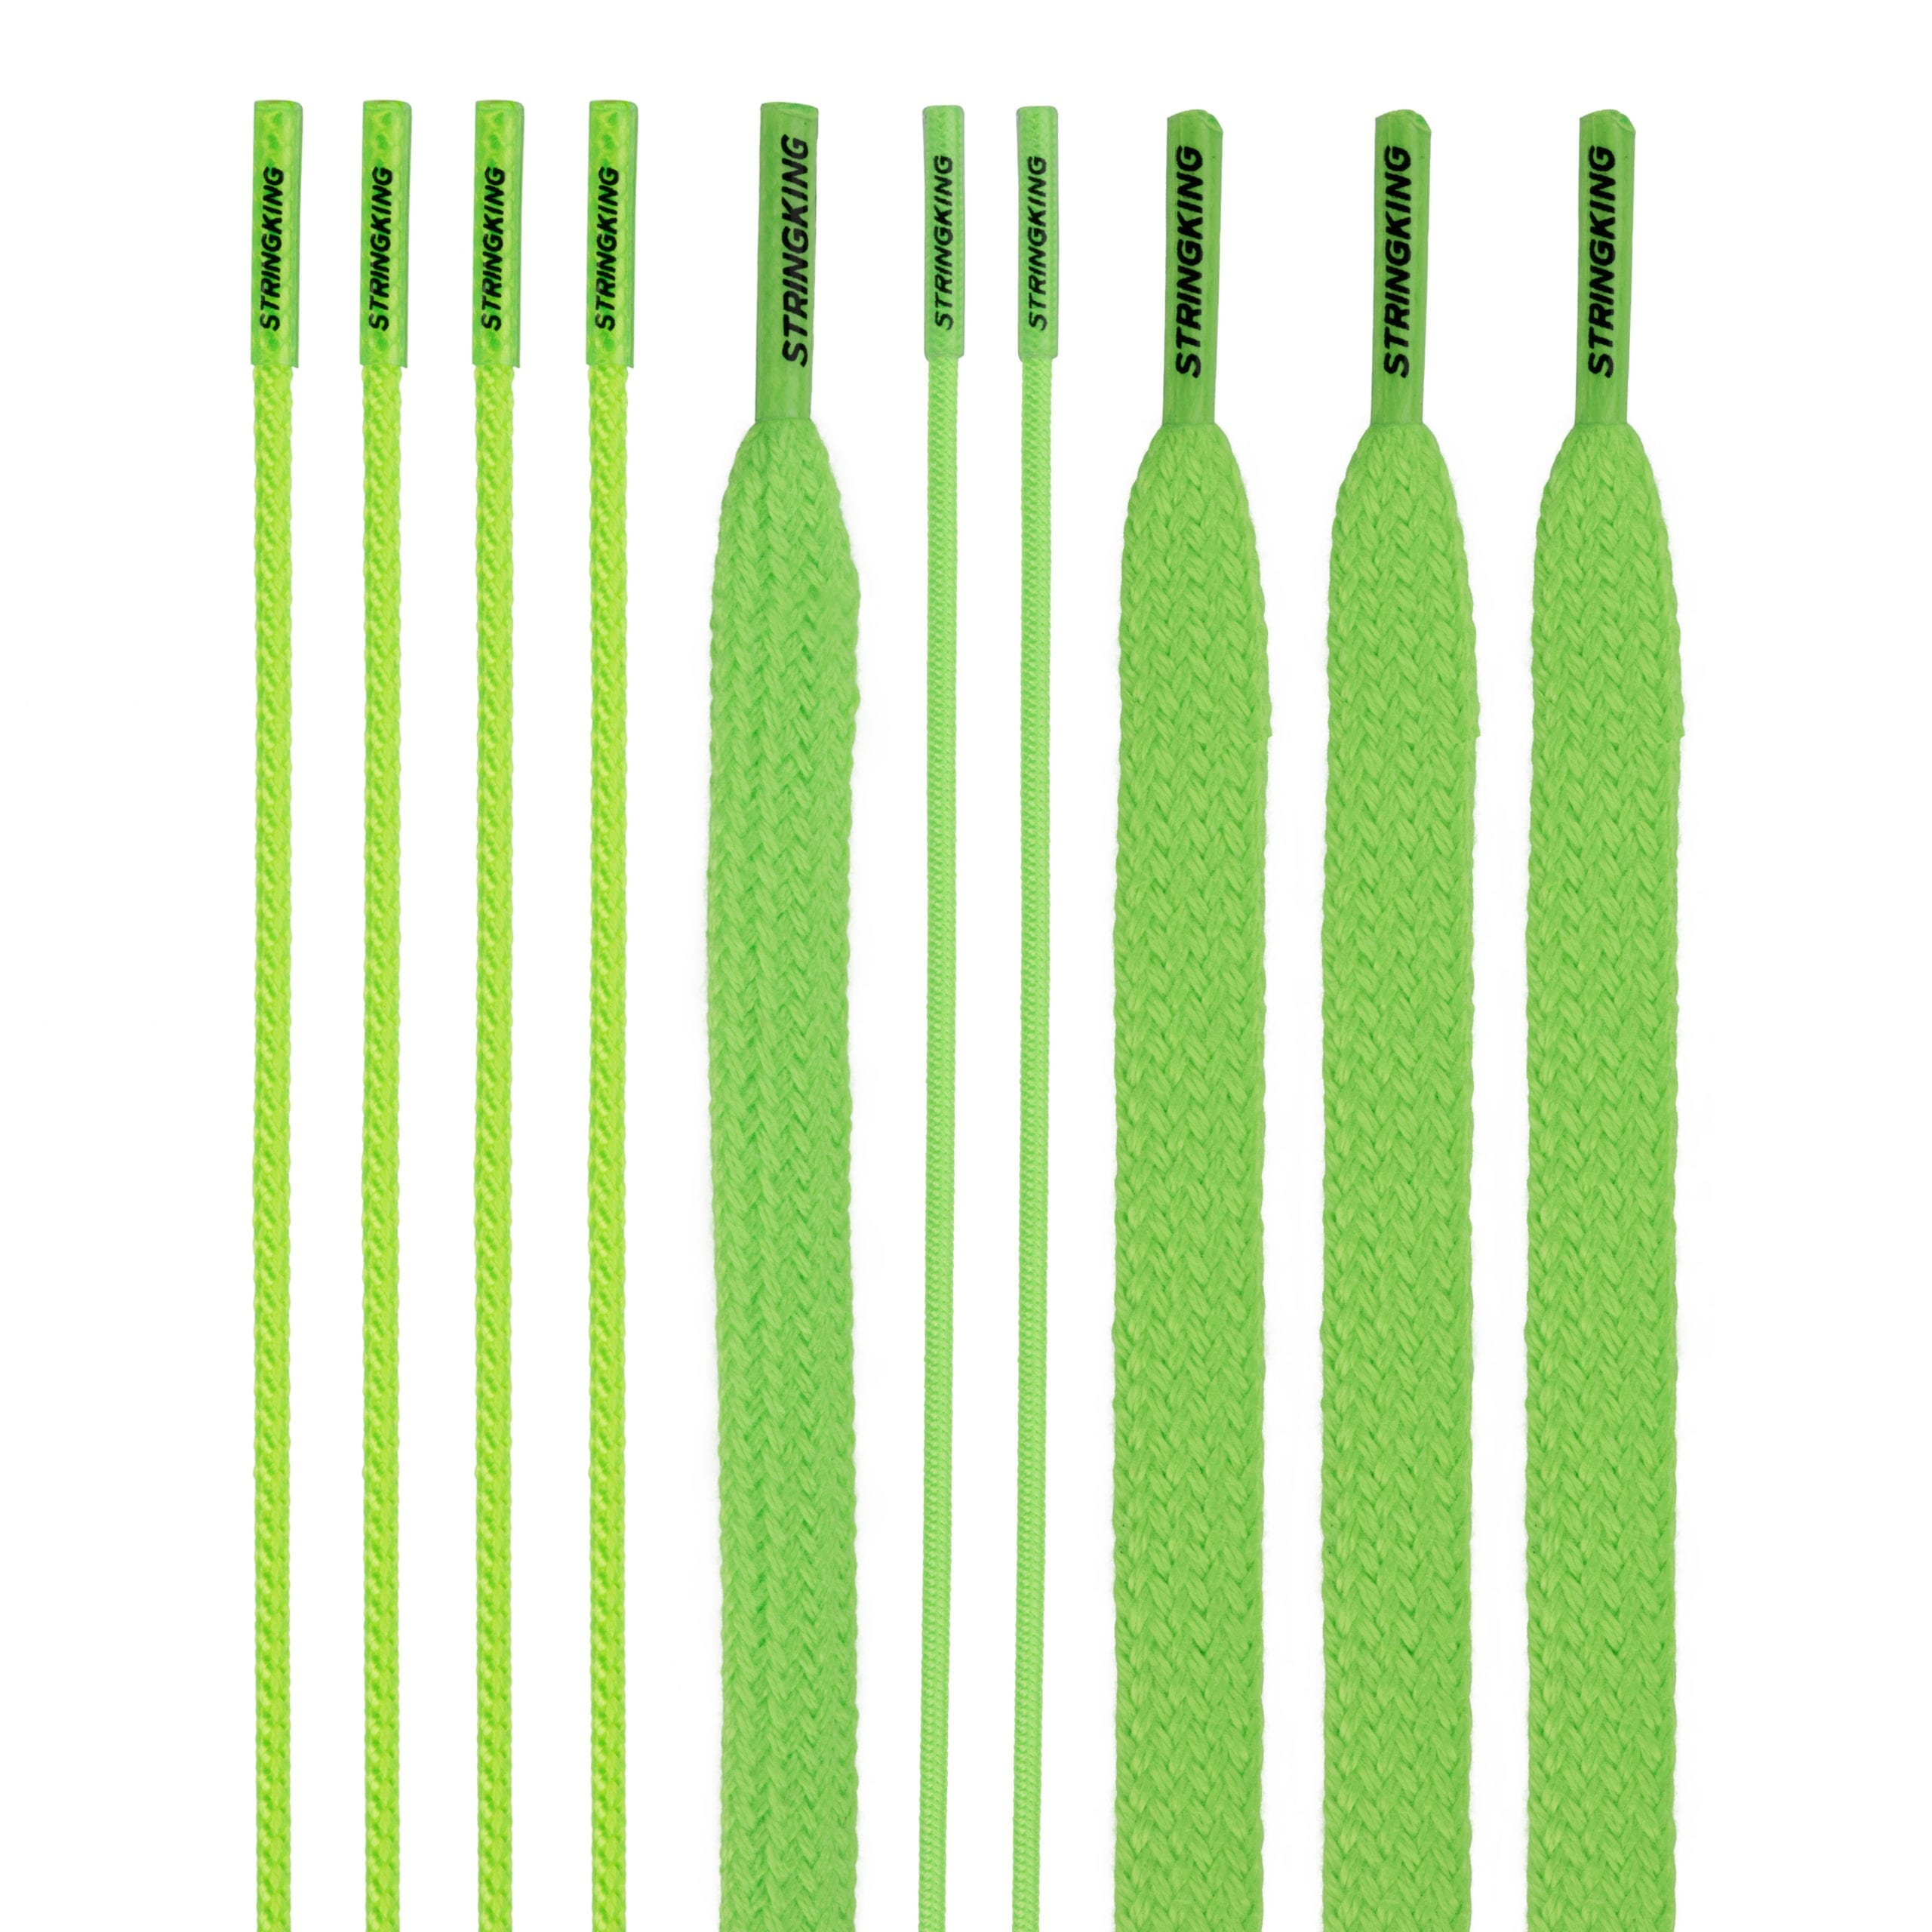 string-kit-BB-retailers-lime-1-scaled-1.jpg